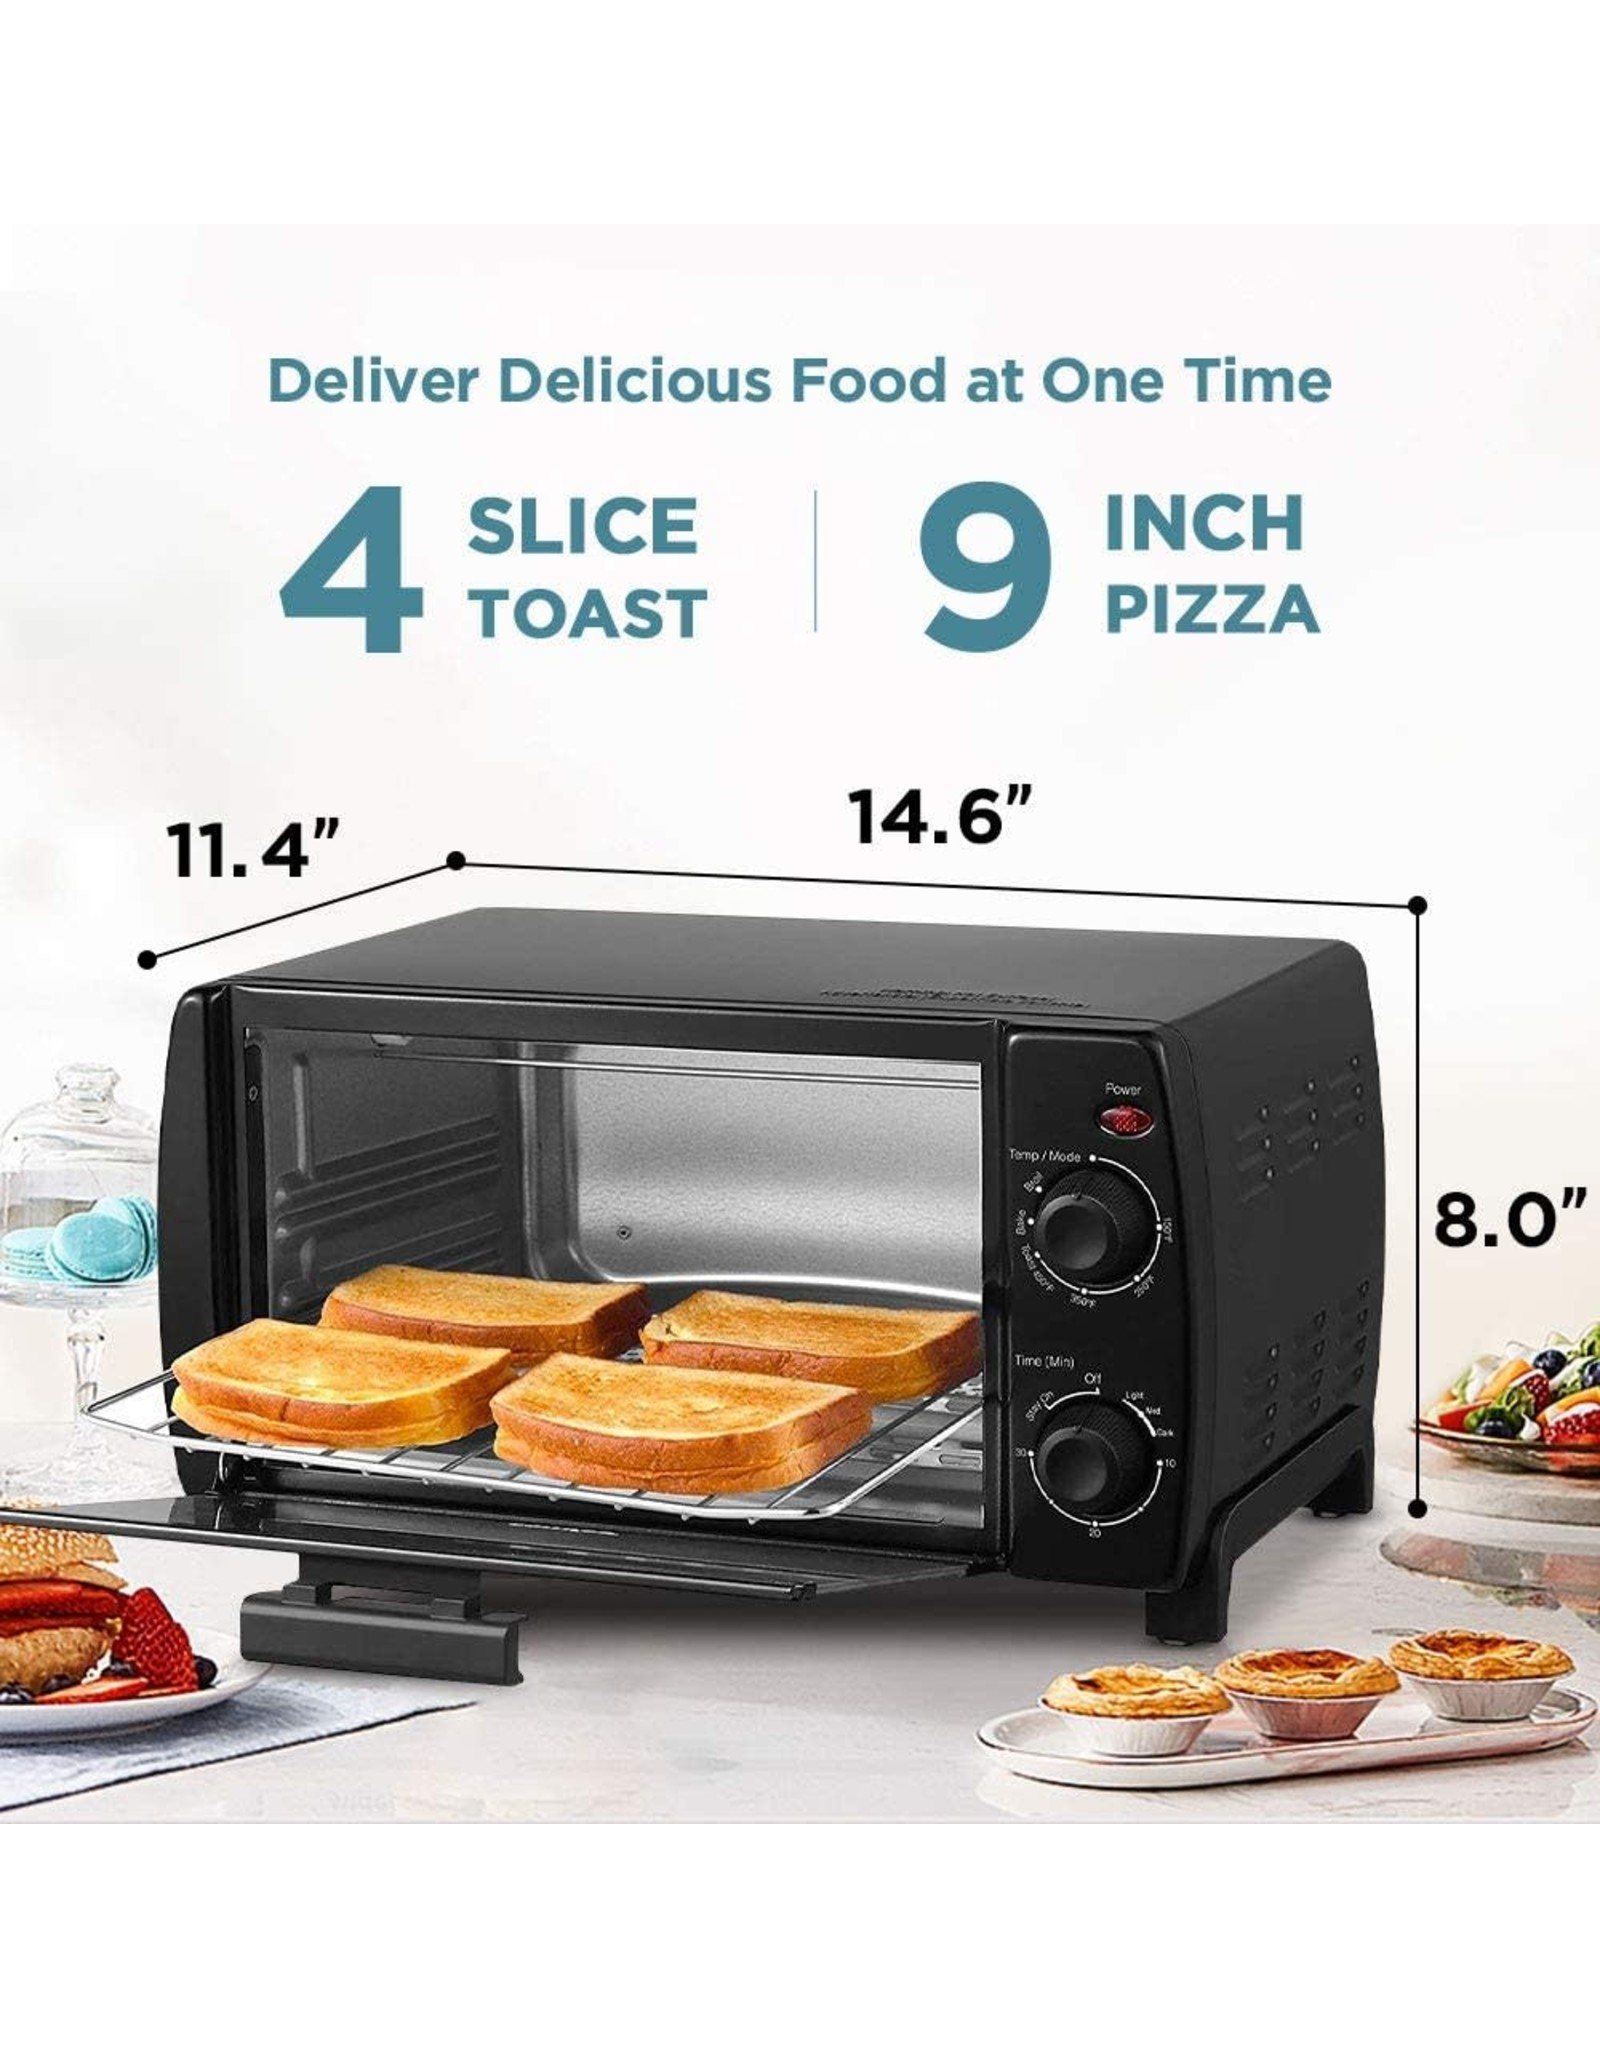 COMFEE' COMFEE' Toaster Oven Countertop, 4-Slice, Compact Size, Easy to Control with Timer-Bake-Broil-Toast Setting, 1000W, Black (CFO-BB101)